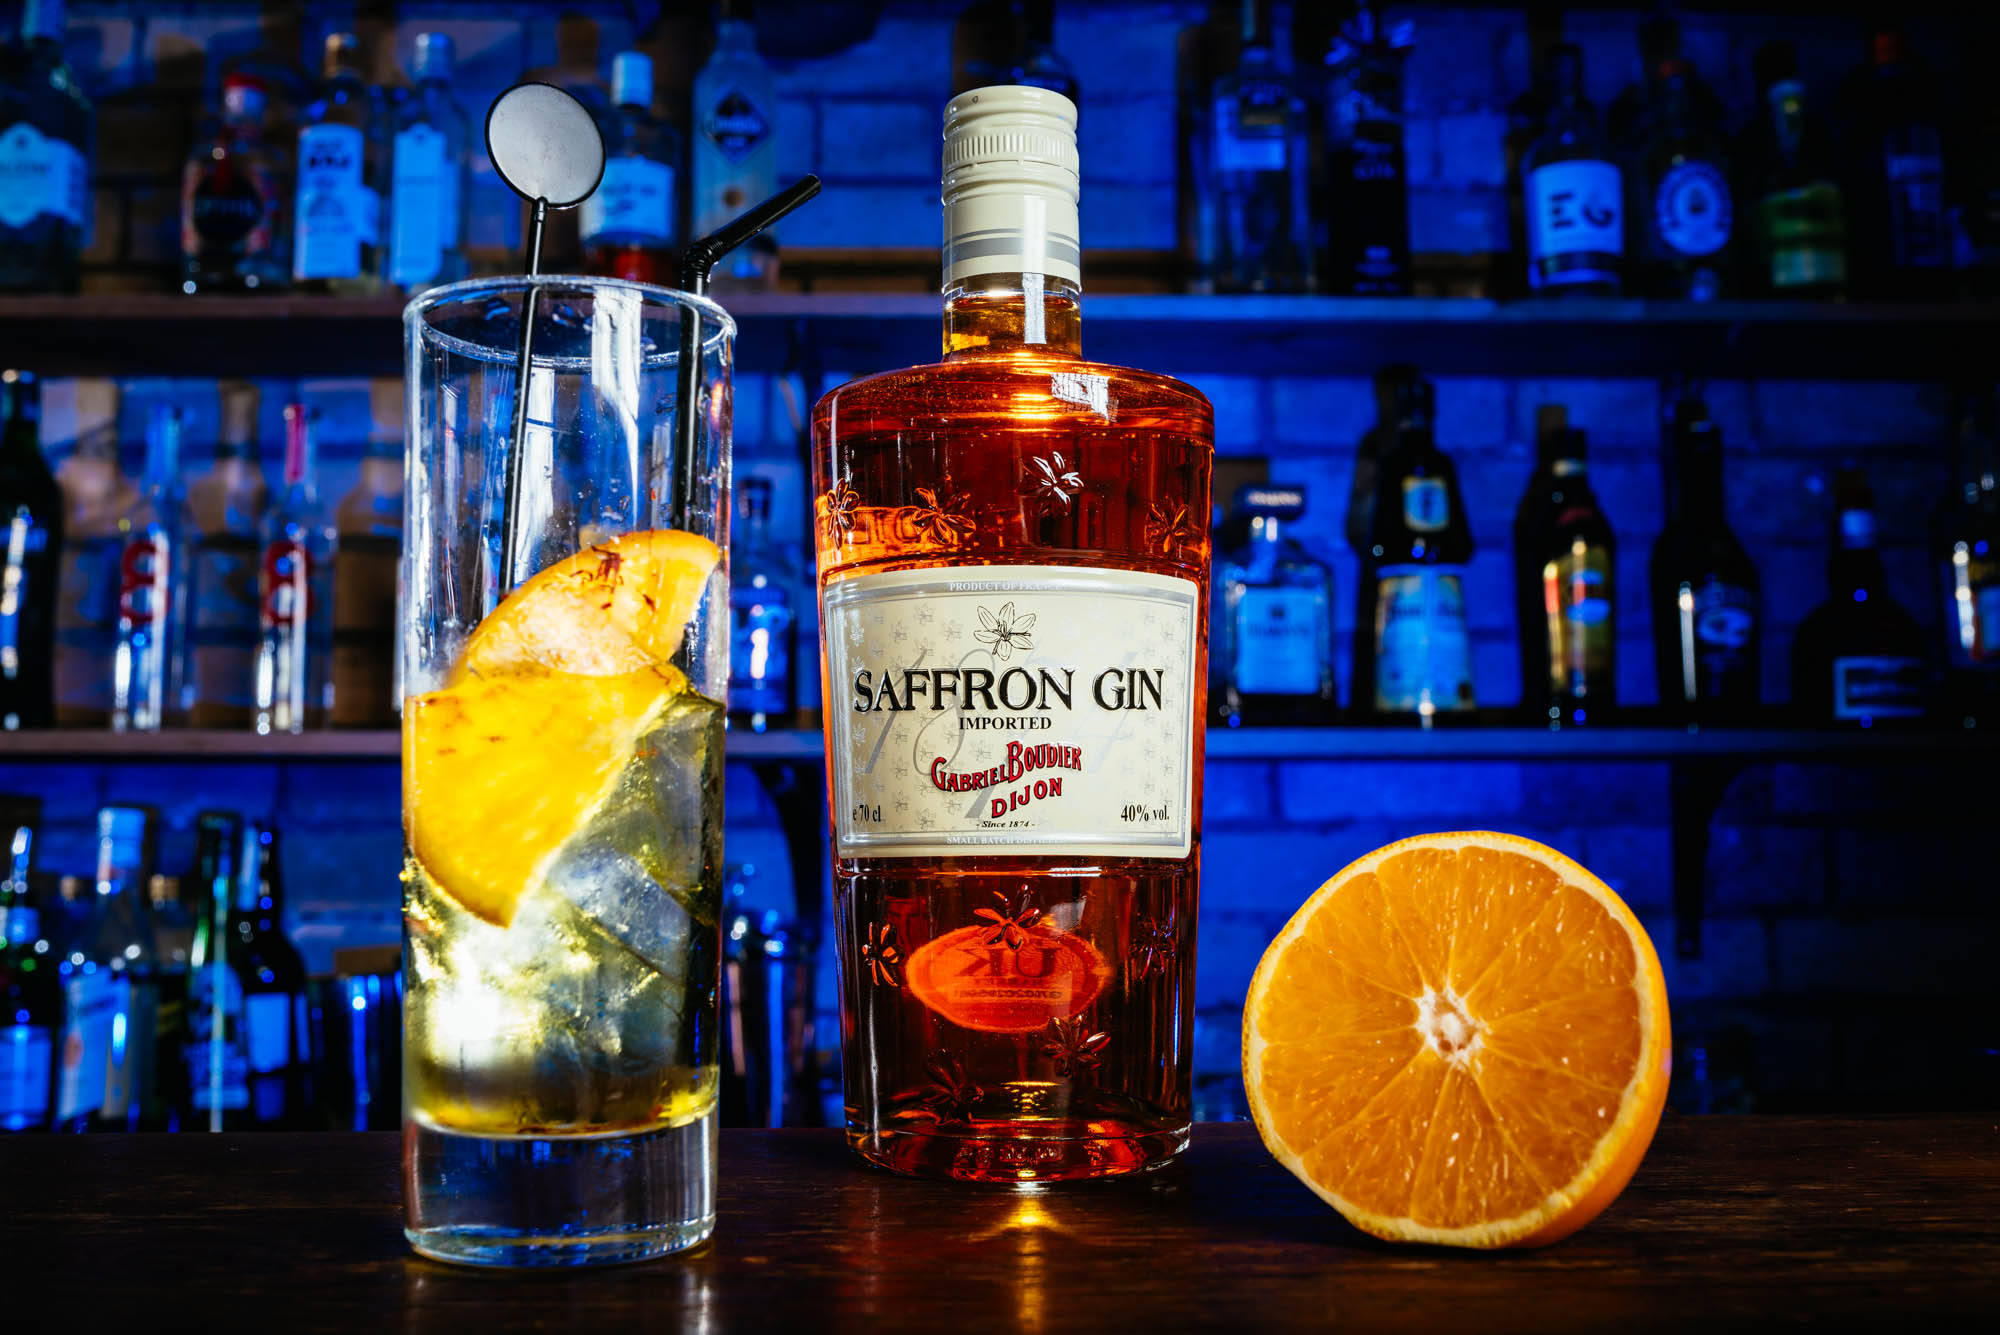 A photo of a bottle of saffron gin with a glass and a sliced orange in front of a blue lit bar